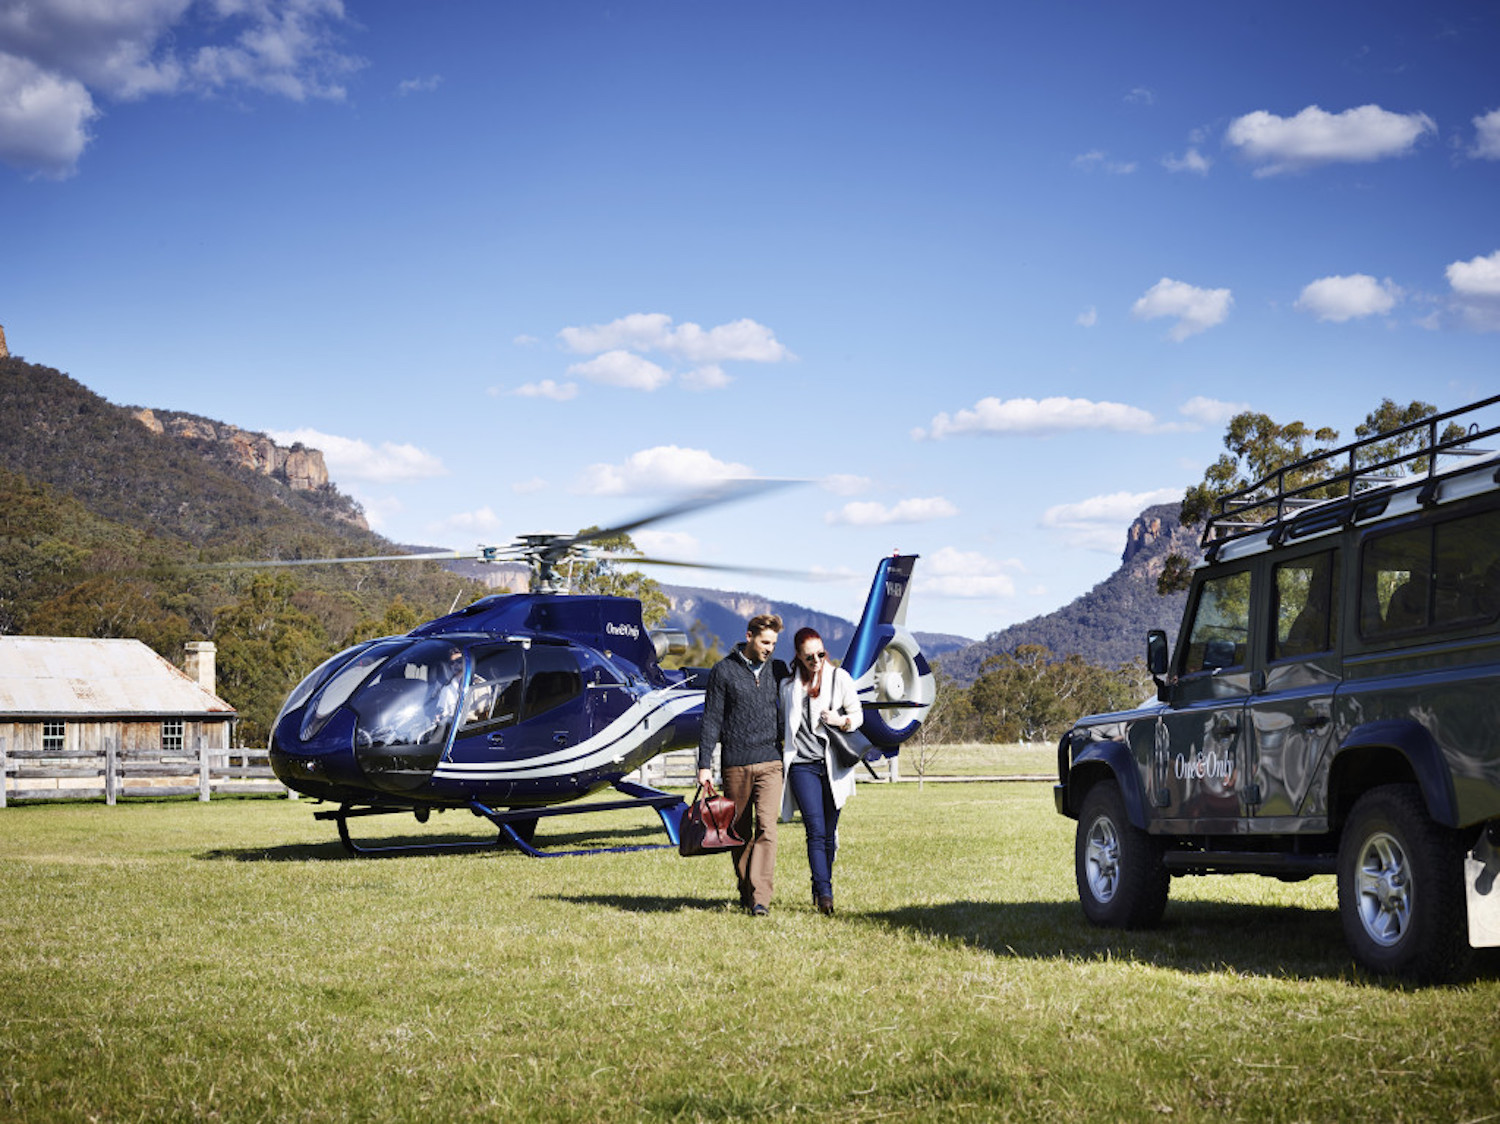 Arrive by helicopter to Emirates One&Only Wolgan Valley in the Blue Mountains